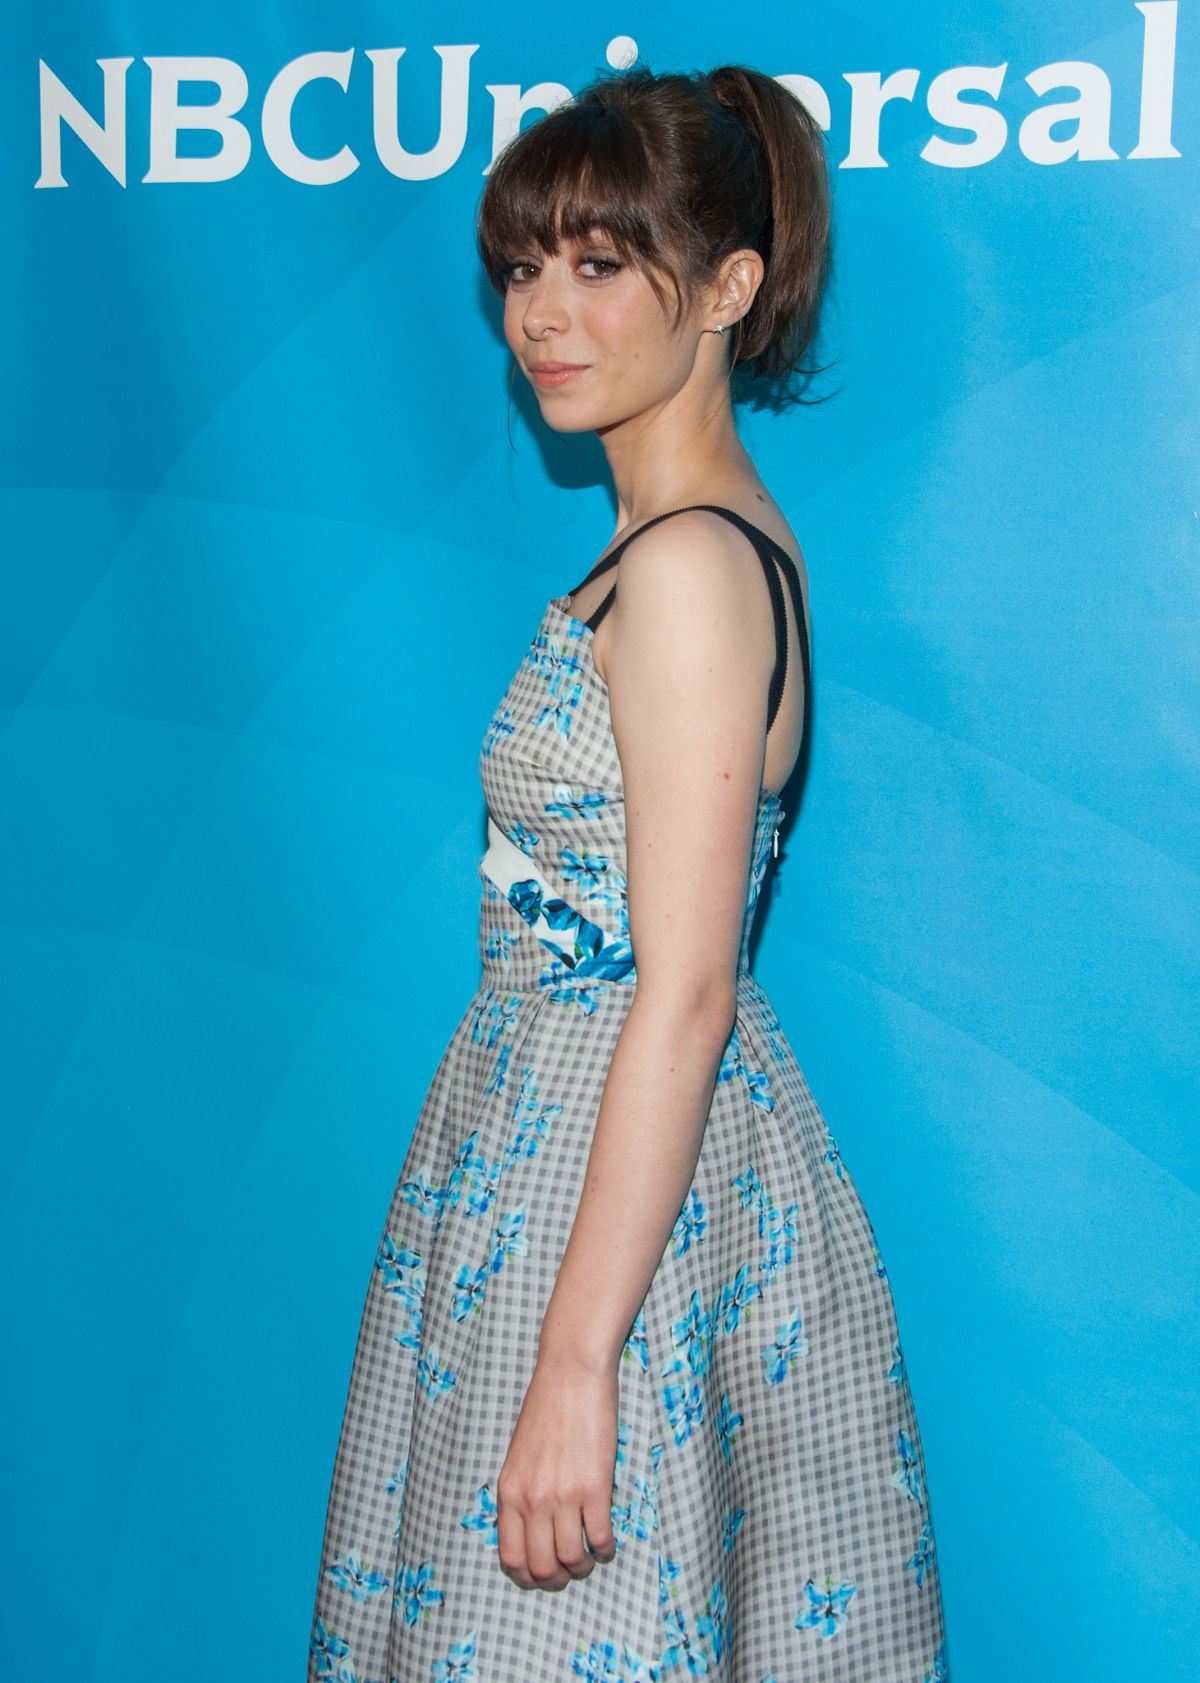 CRISTIN MILIOTI at NBCuniversal 2014 TCA Summer Tour